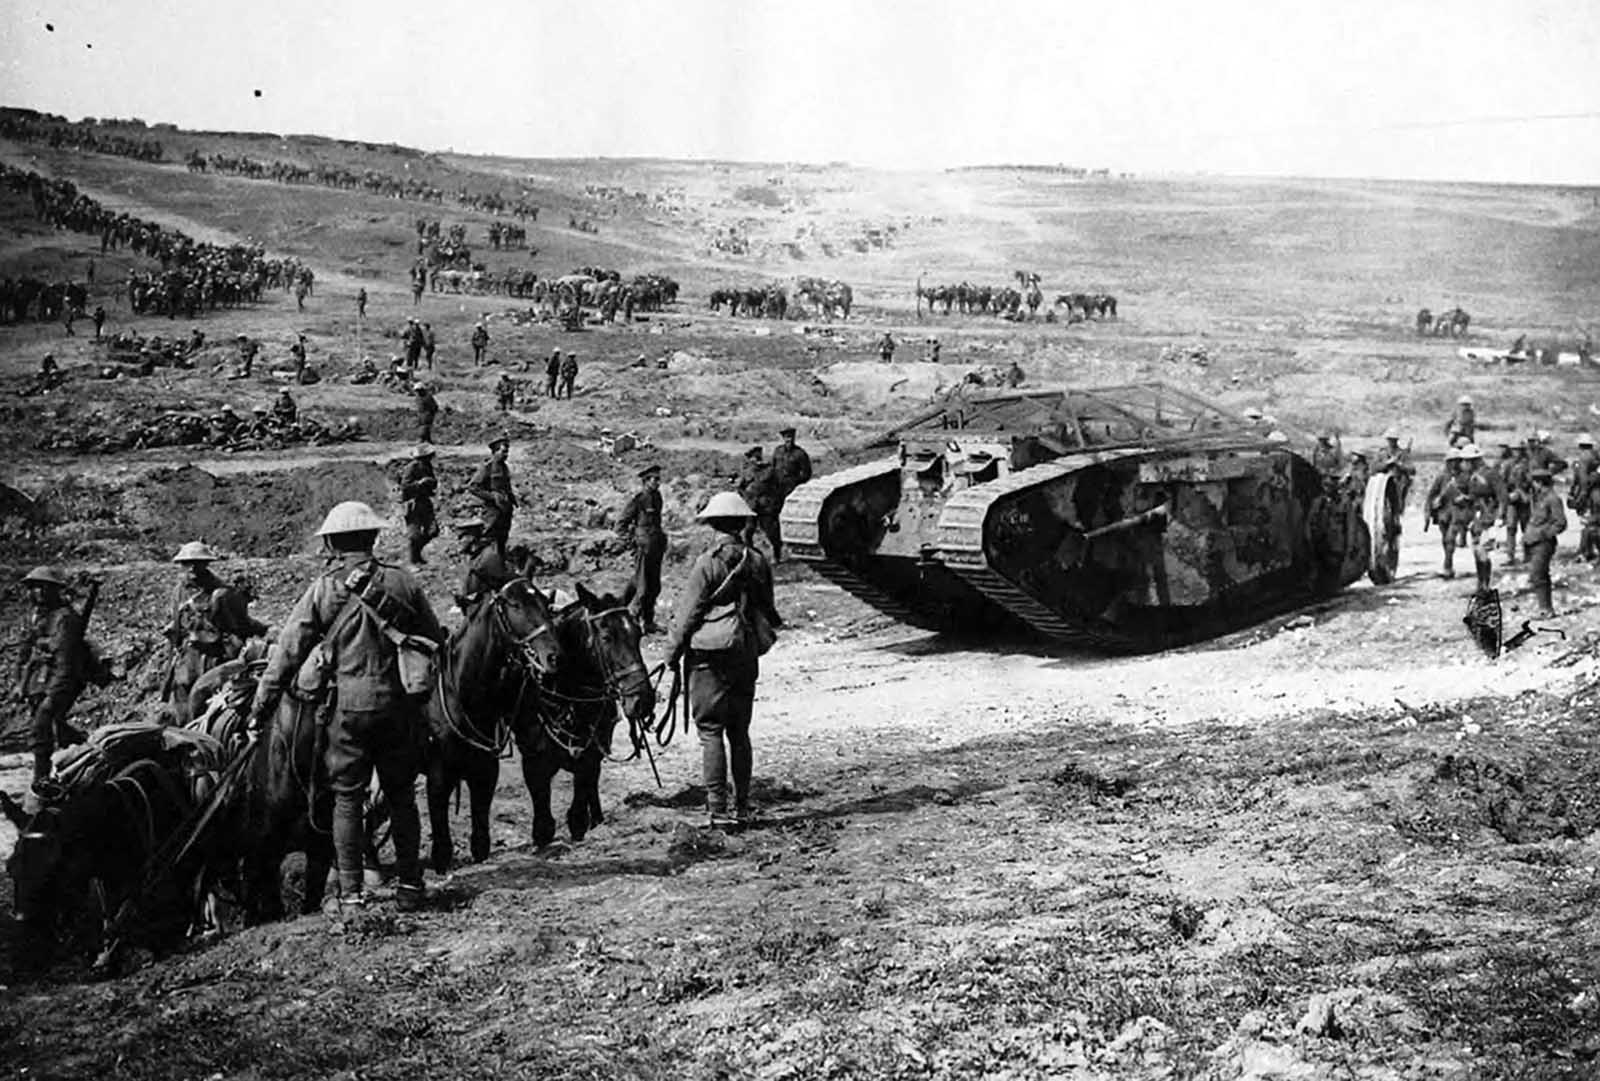 British Mark I tank, apparently painted in camouflage, flanked by infantry soldiers, mules and horses.